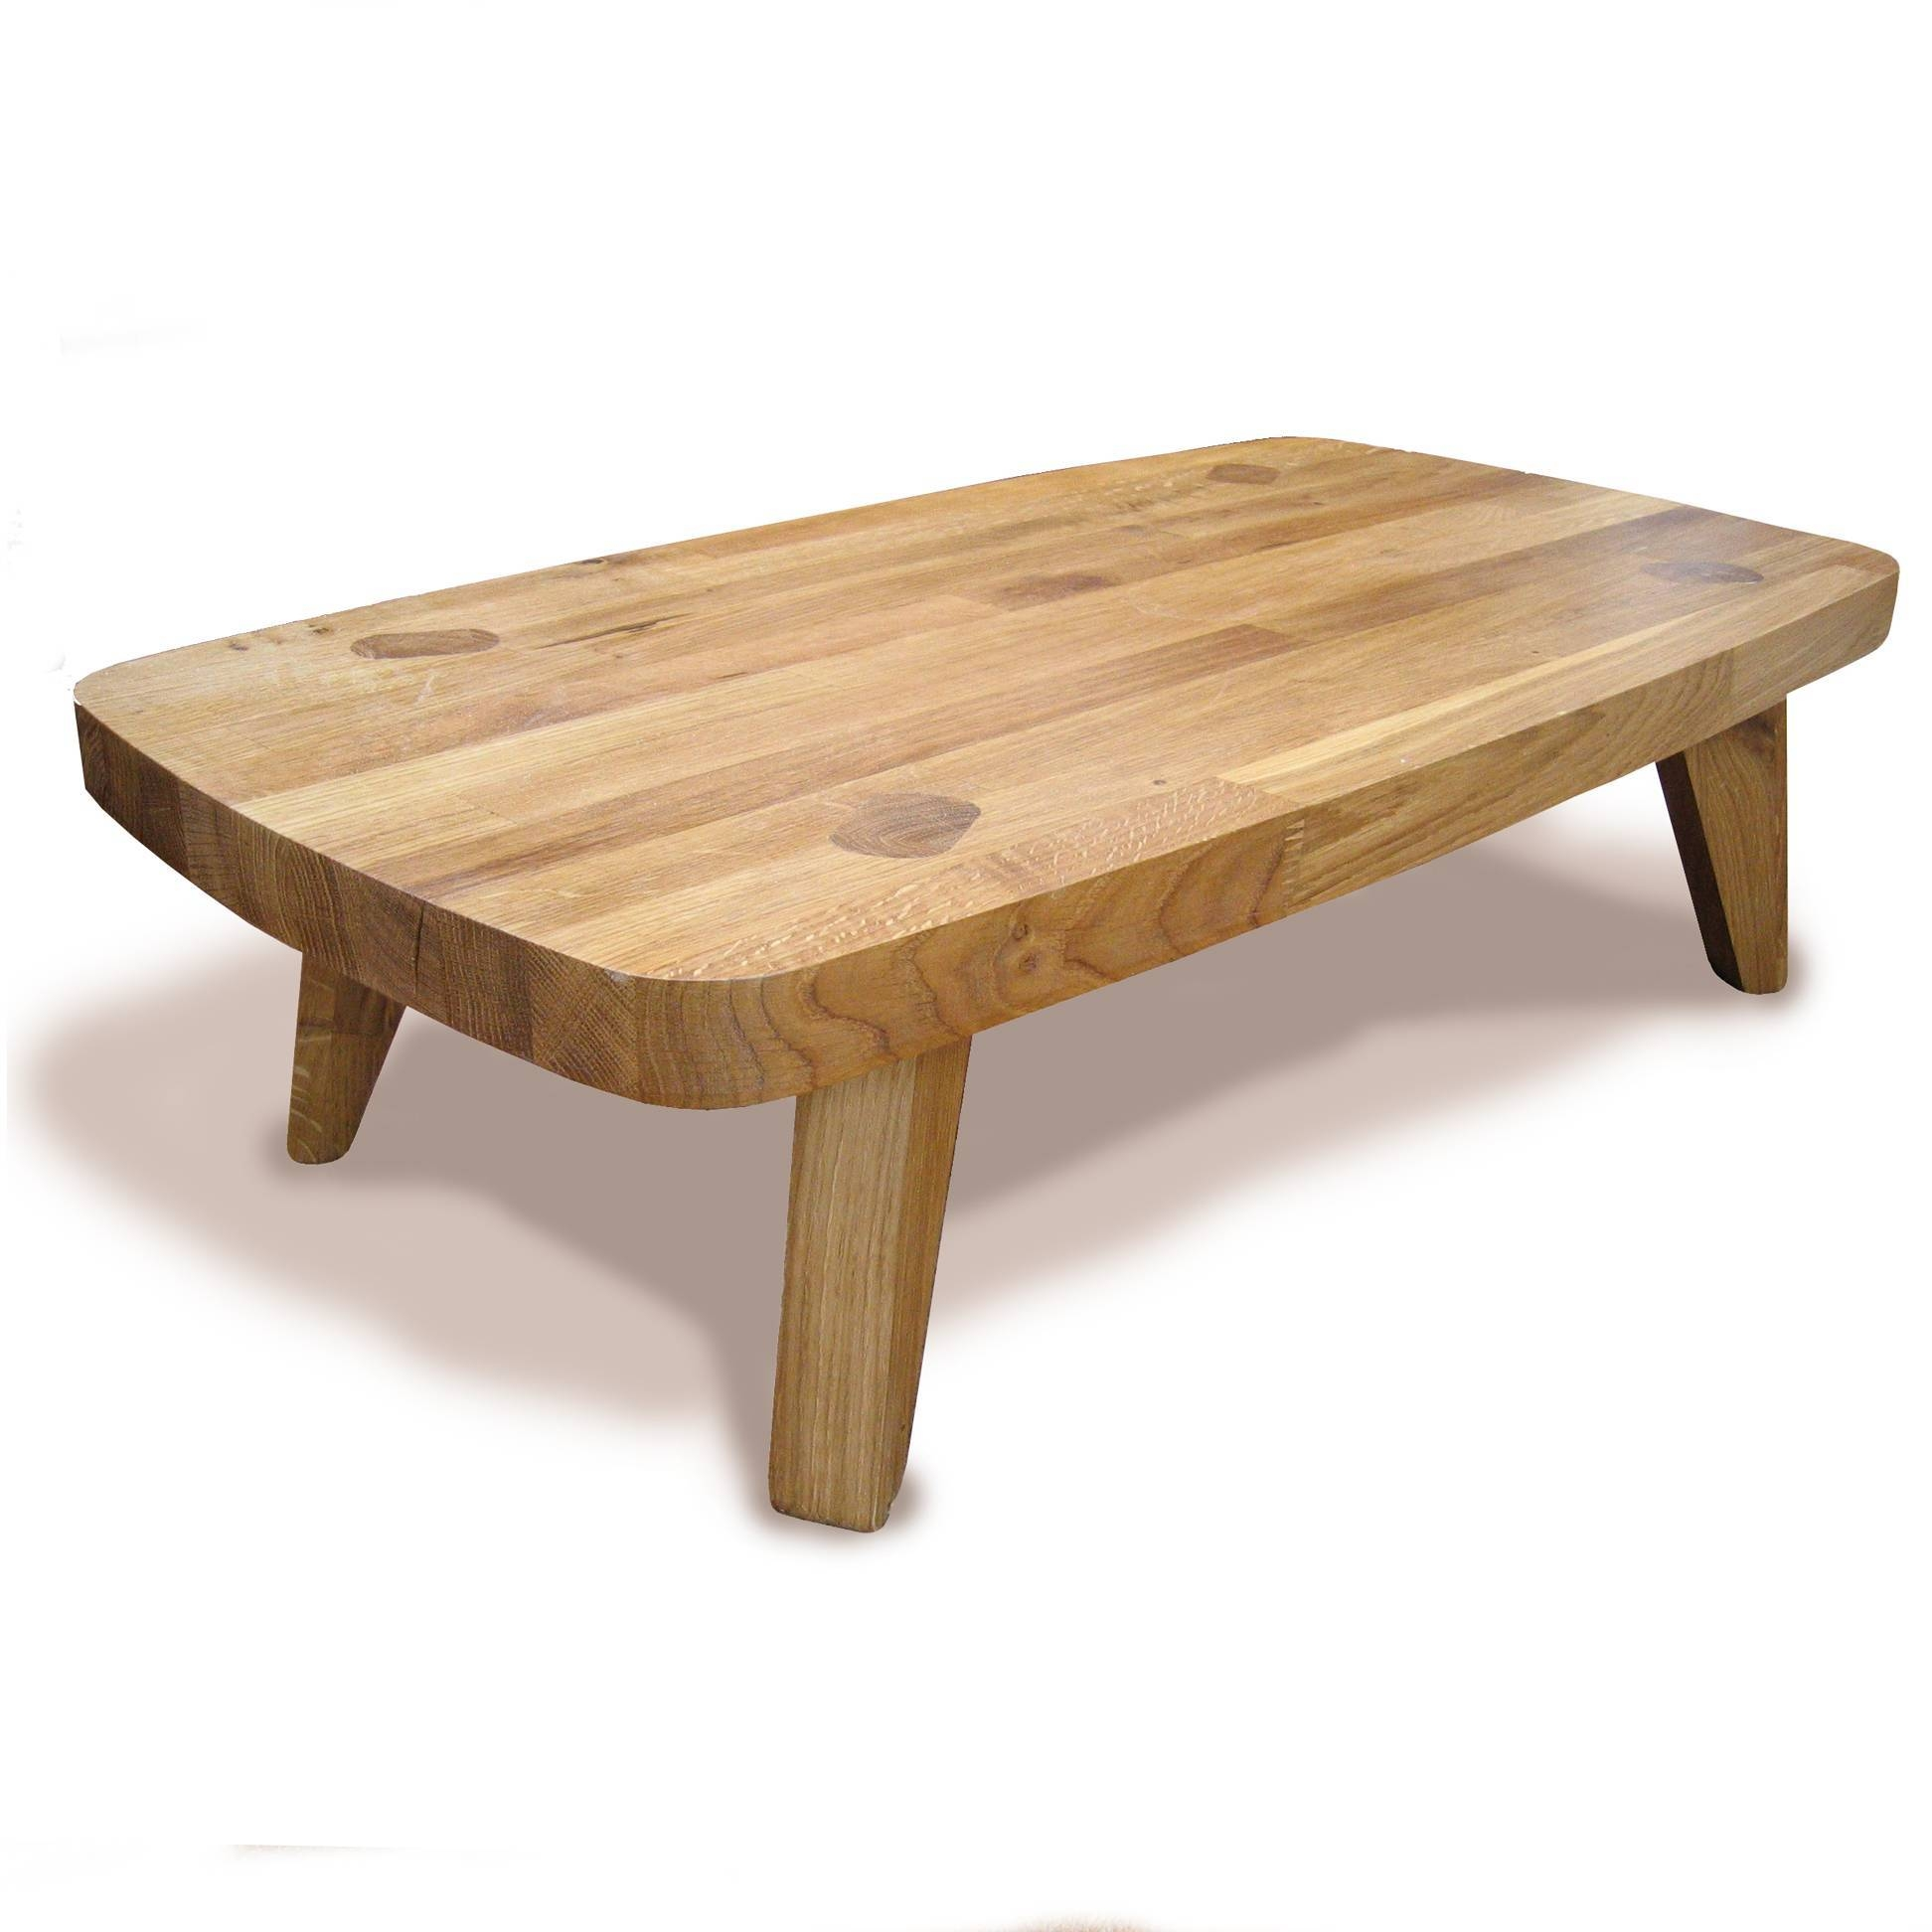 2017 Best of Low Oak Coffee Tables